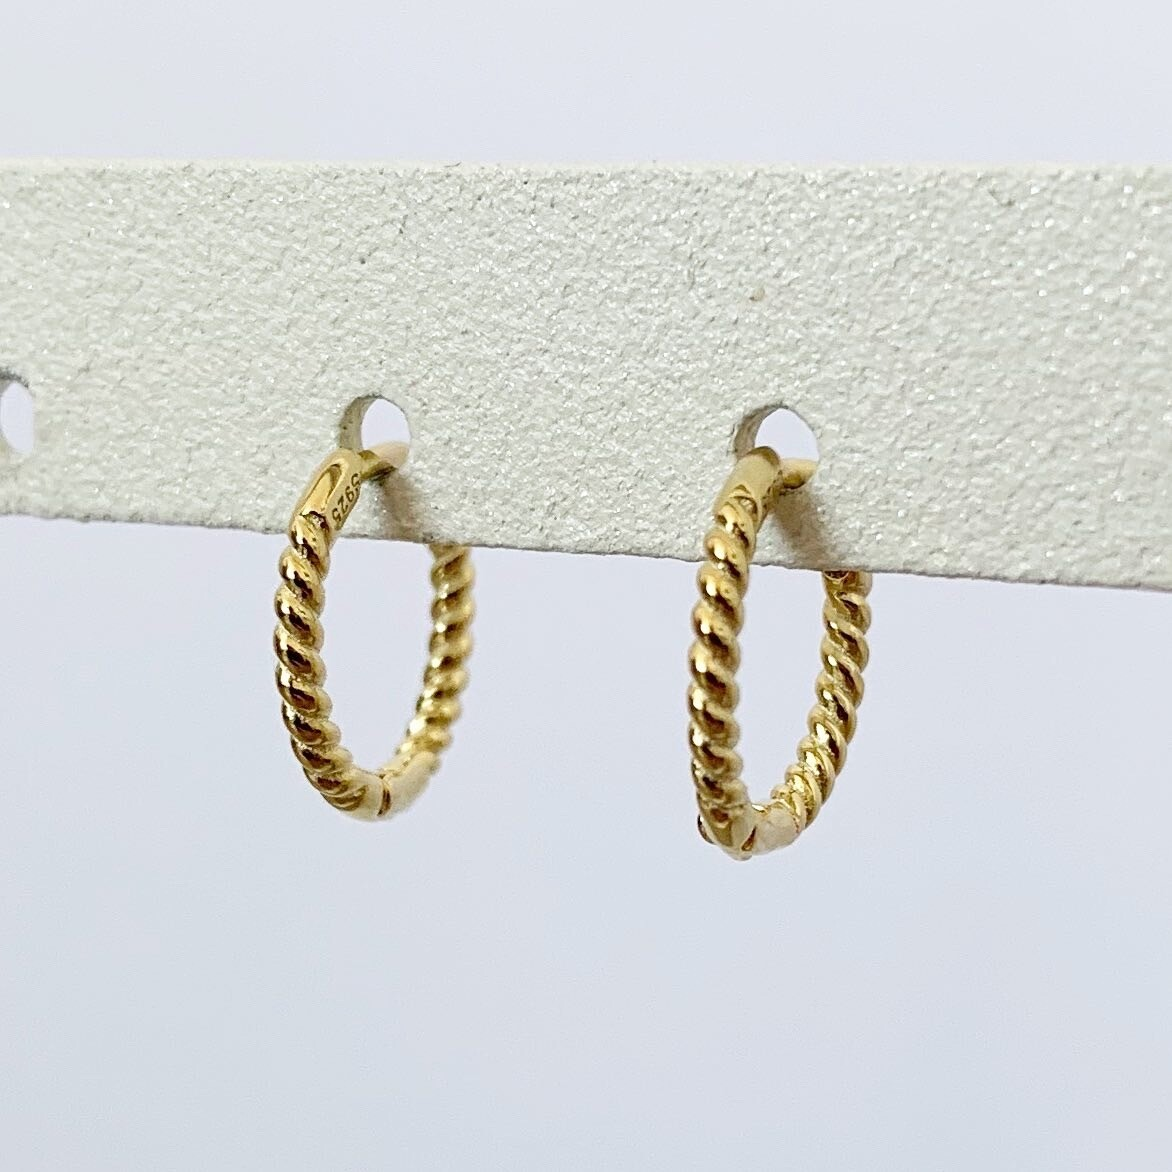 Twisted oorringetjes gold plated 8 MM